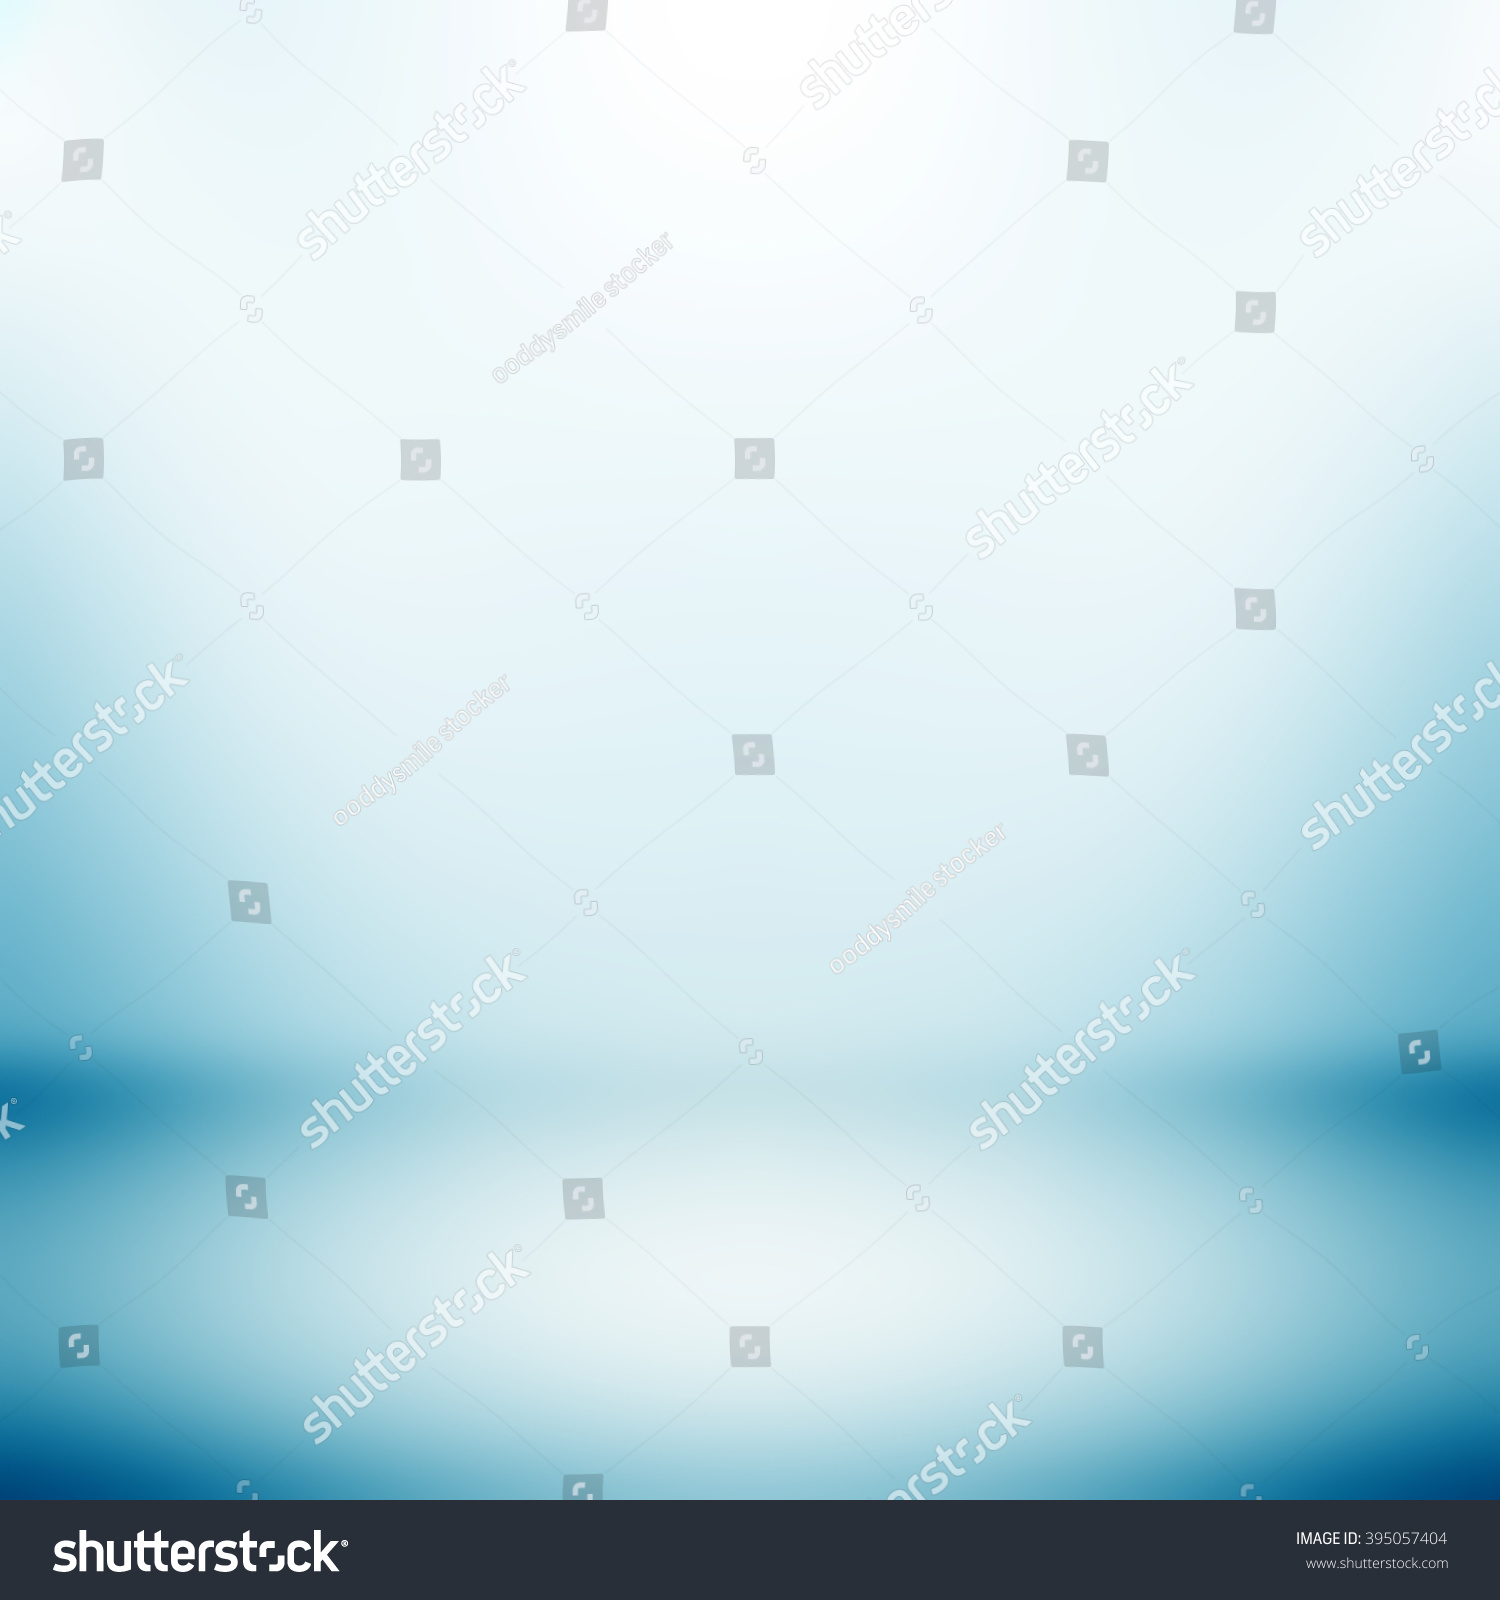 Black And Bluegradient: Light Blue Gradient Abstract Background Blue Stock